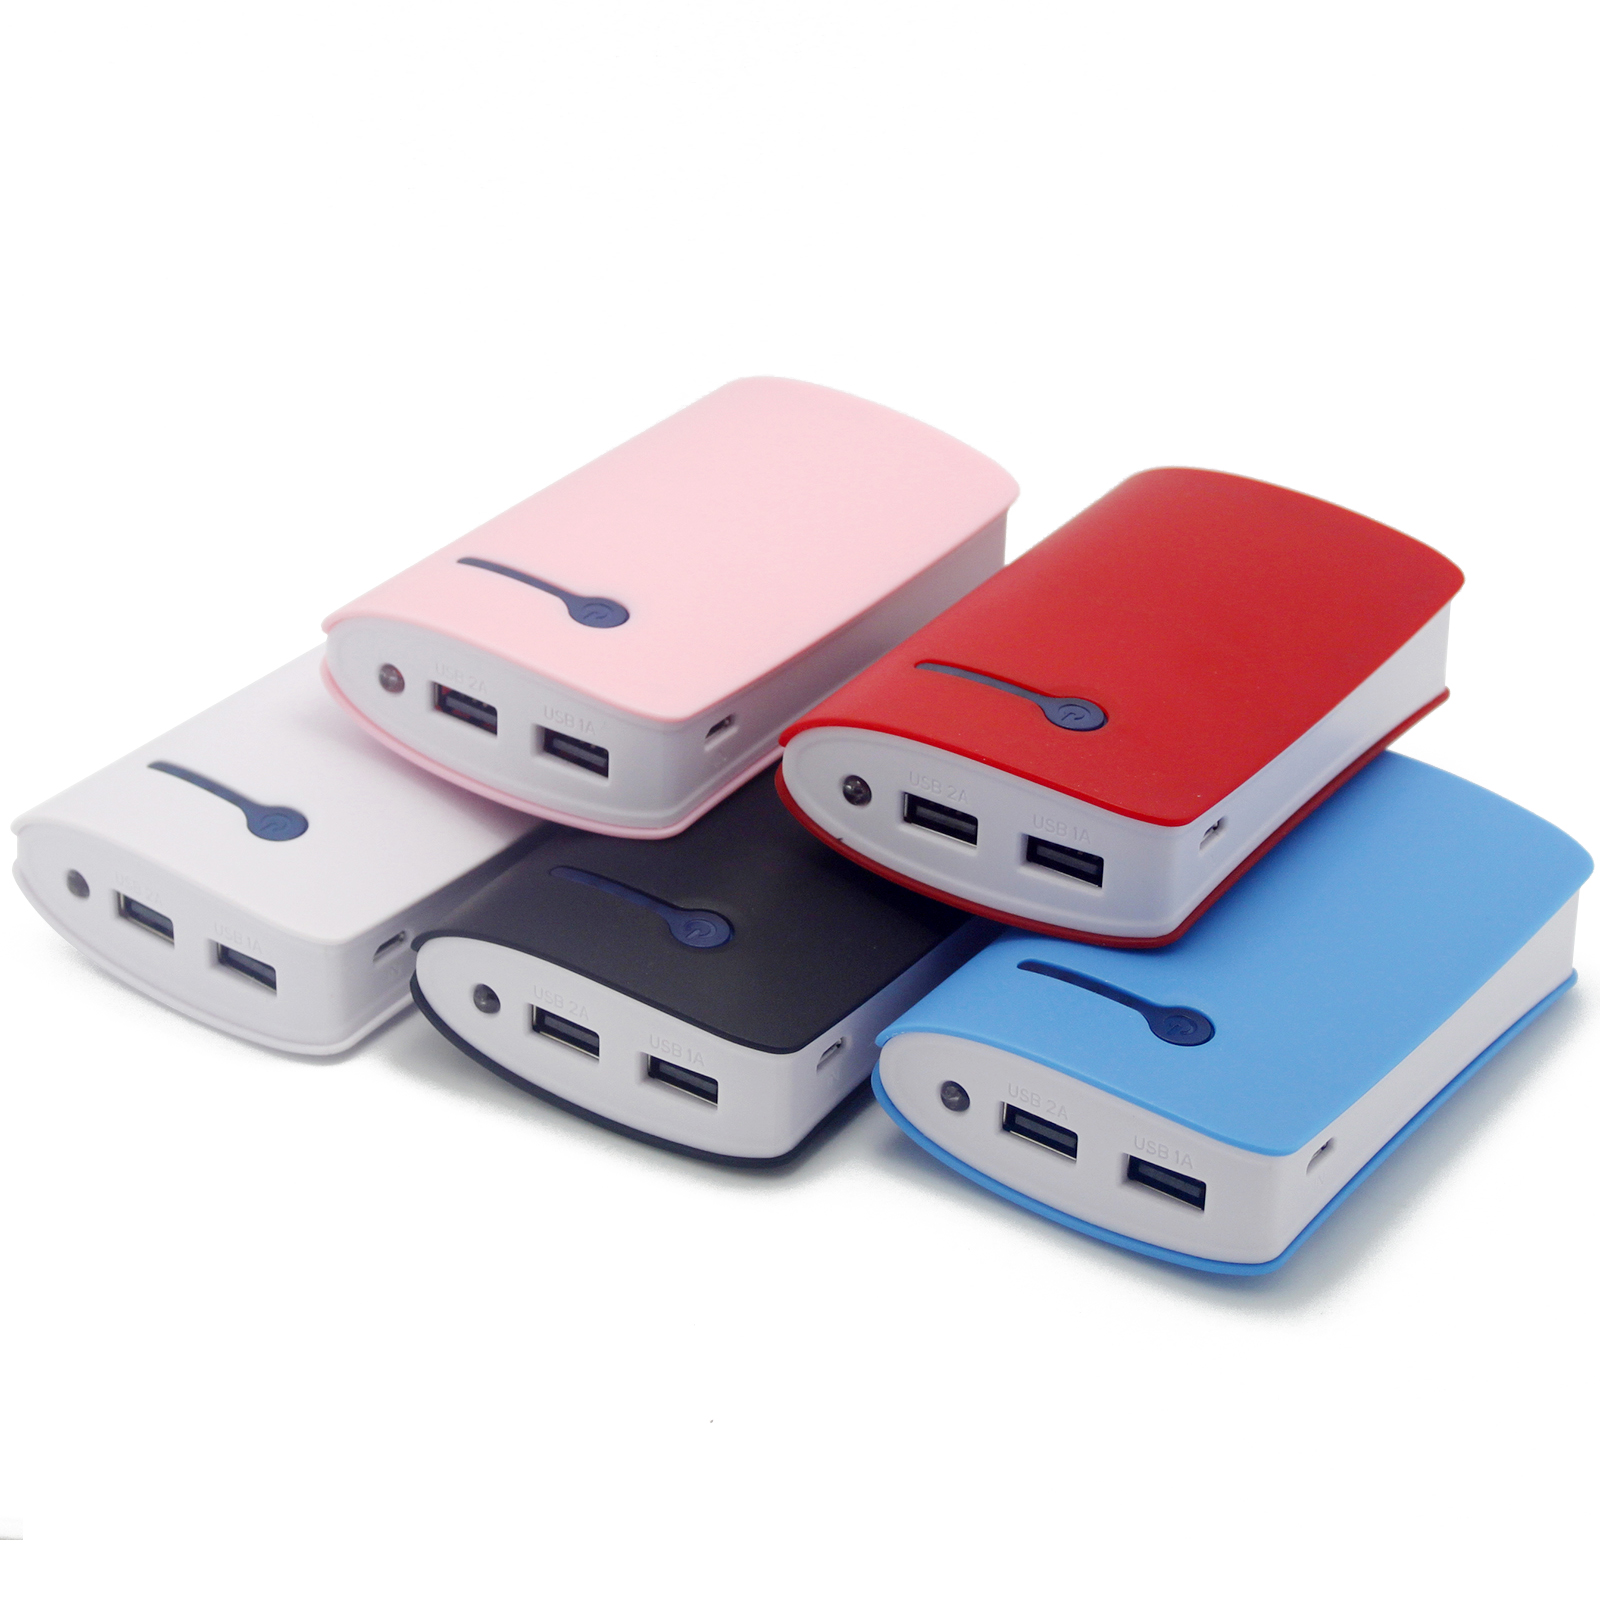 Bolan 6600mAh Portable External Battery for Smartphones and other Digital Devices